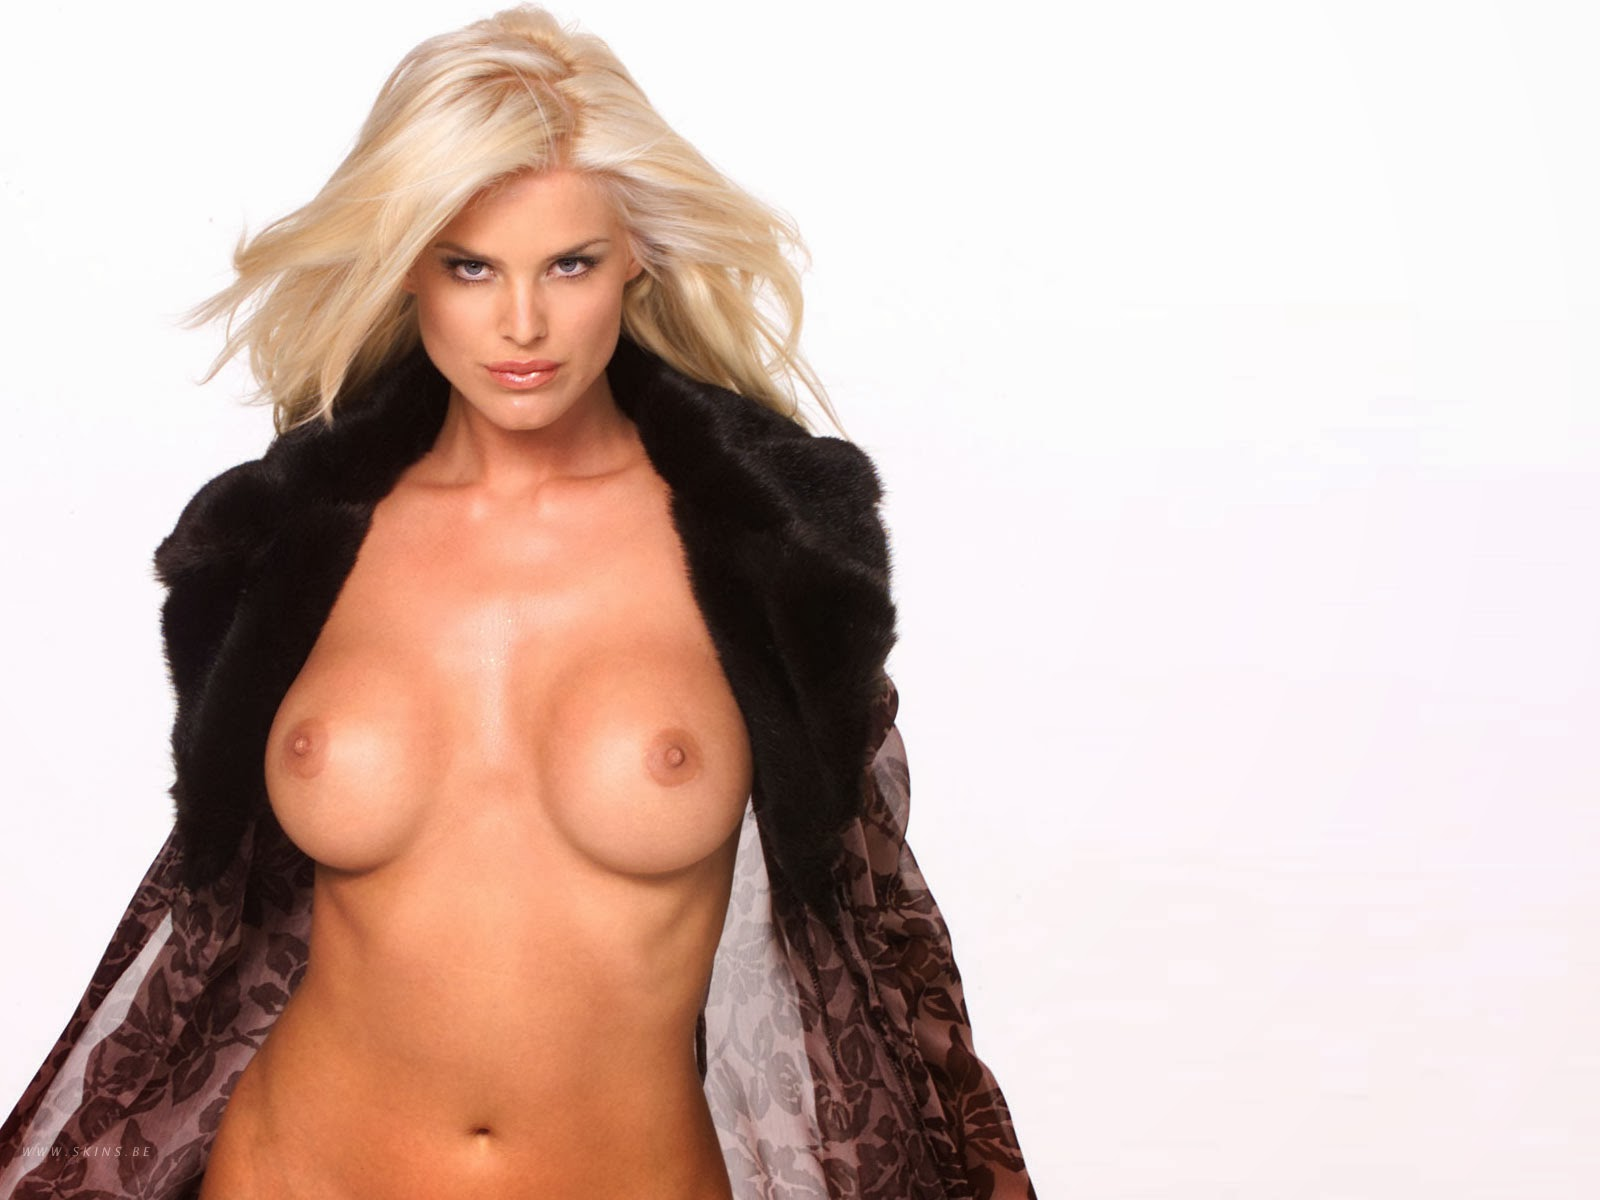 Victoria silvstedt nuda hot